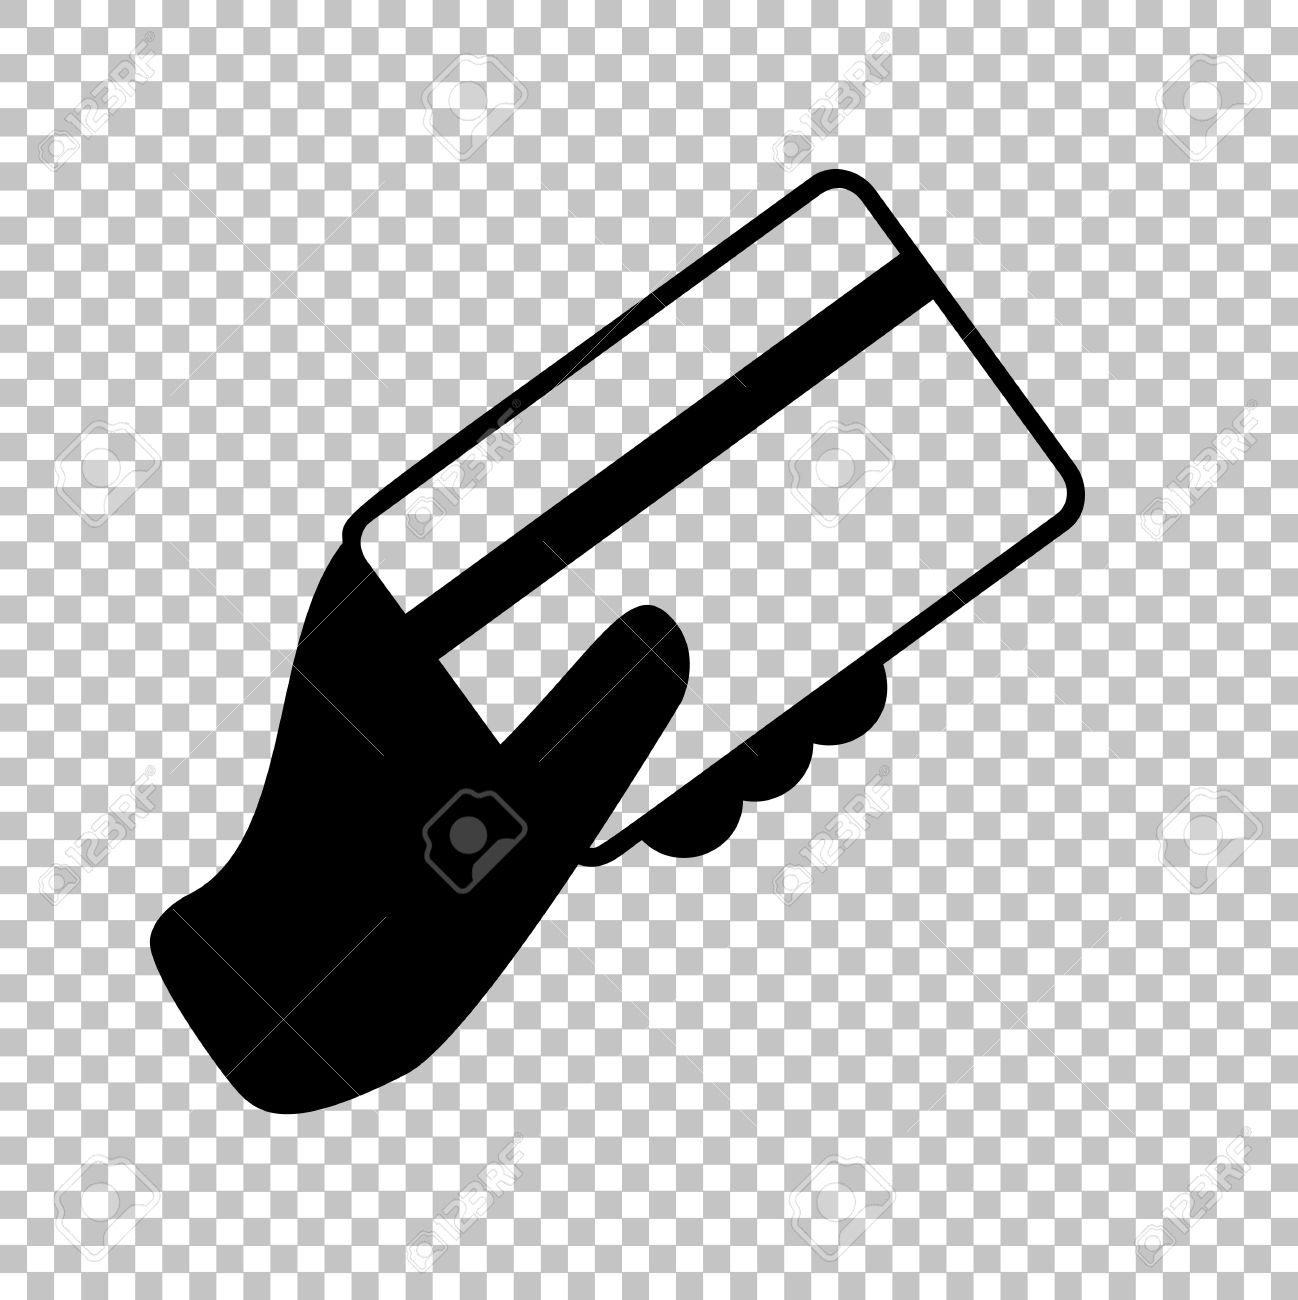 hand holding a credit card flat style icon on transparent